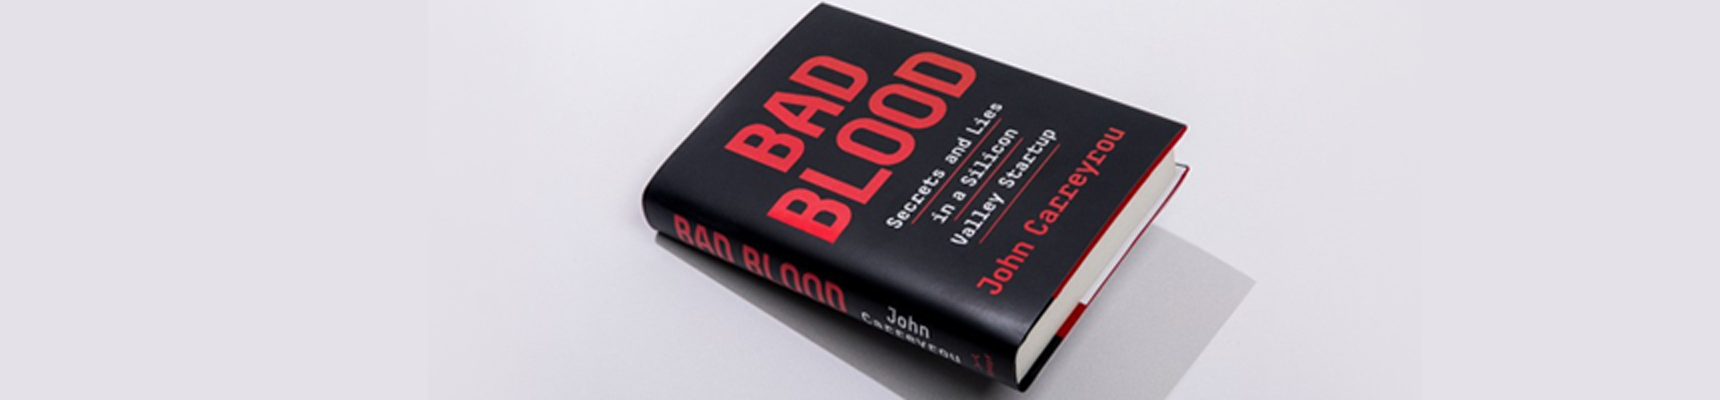 Photo of the book, Bad Blood.